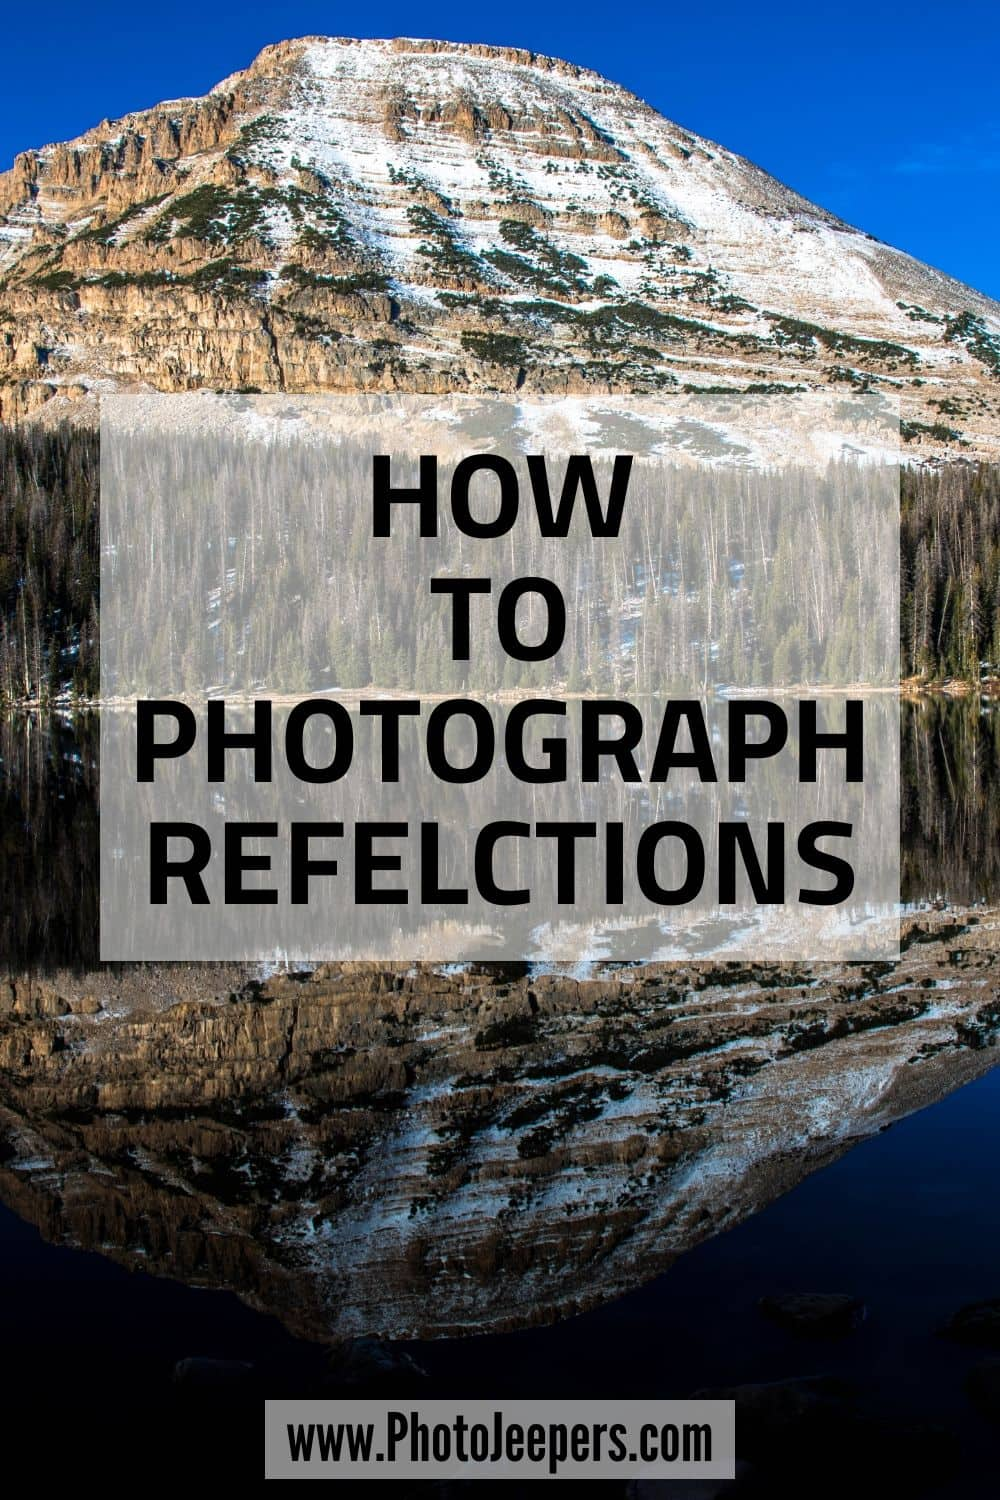 All you need to know about How to Photograph Reflections. Photography tips to research location, best time of day and composition techniques to capture reflection photos. #photography #photographytips #phototips #reflections #photojeepers